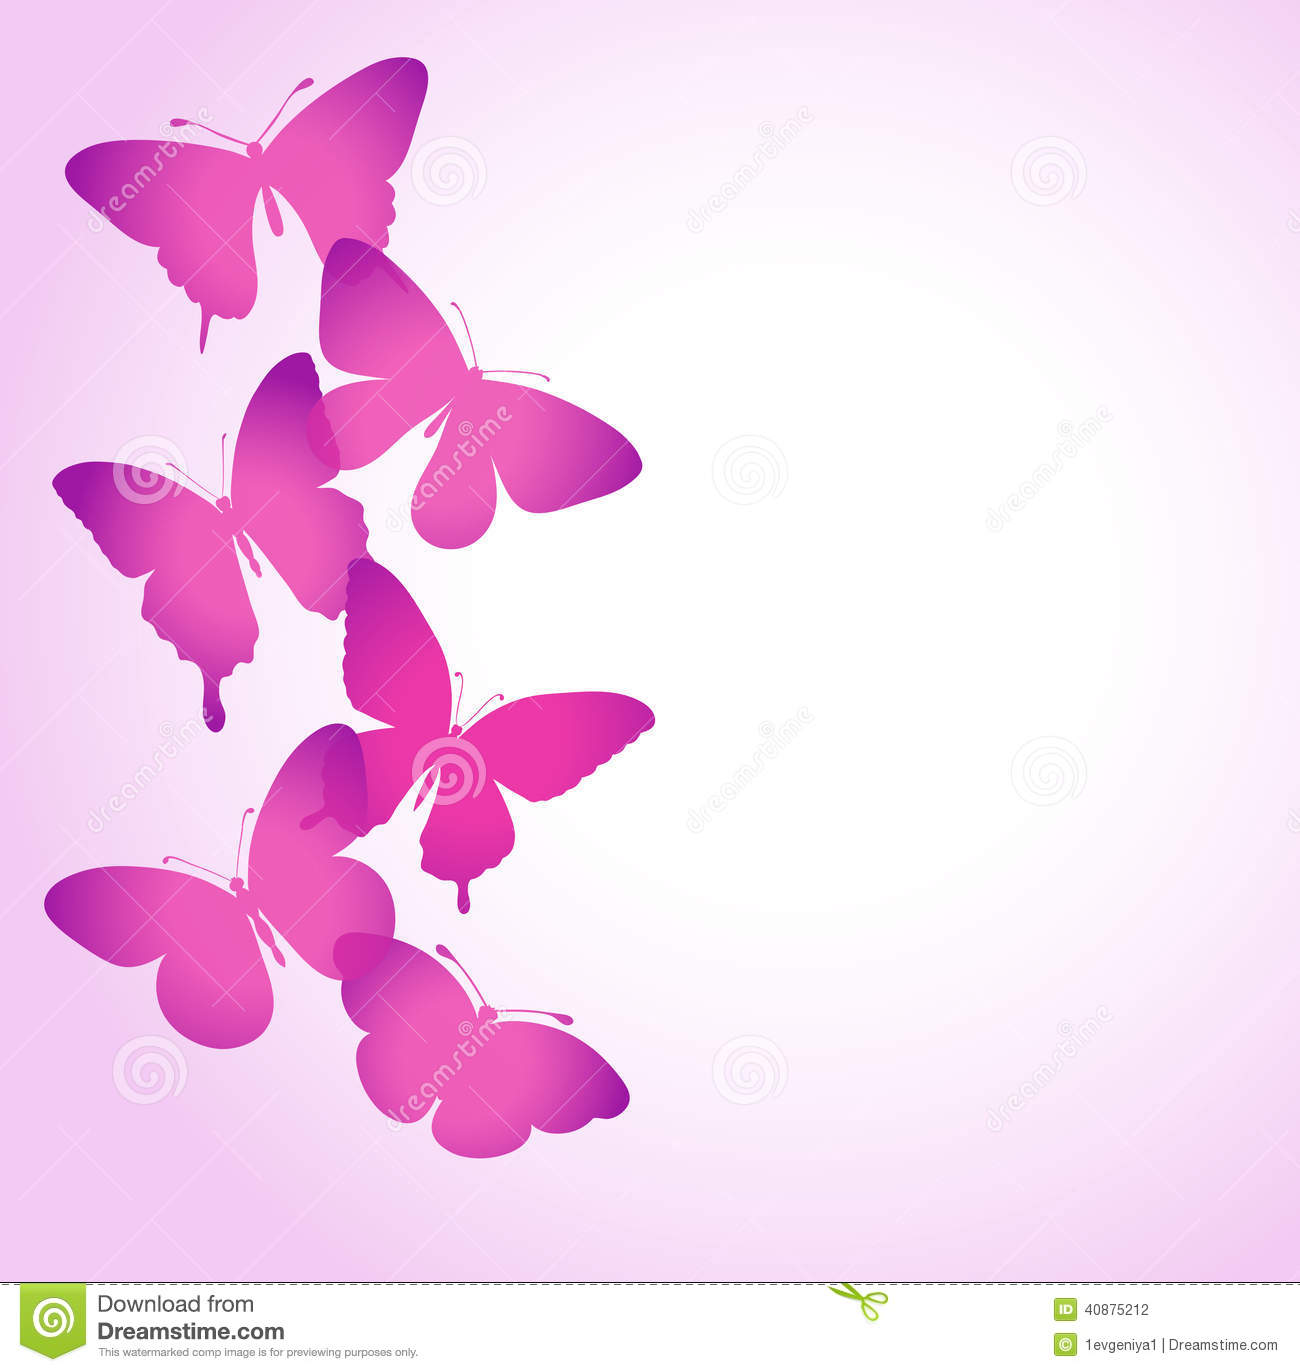 Background With A Border Of Butterflies Flying. Stock Illustration ...